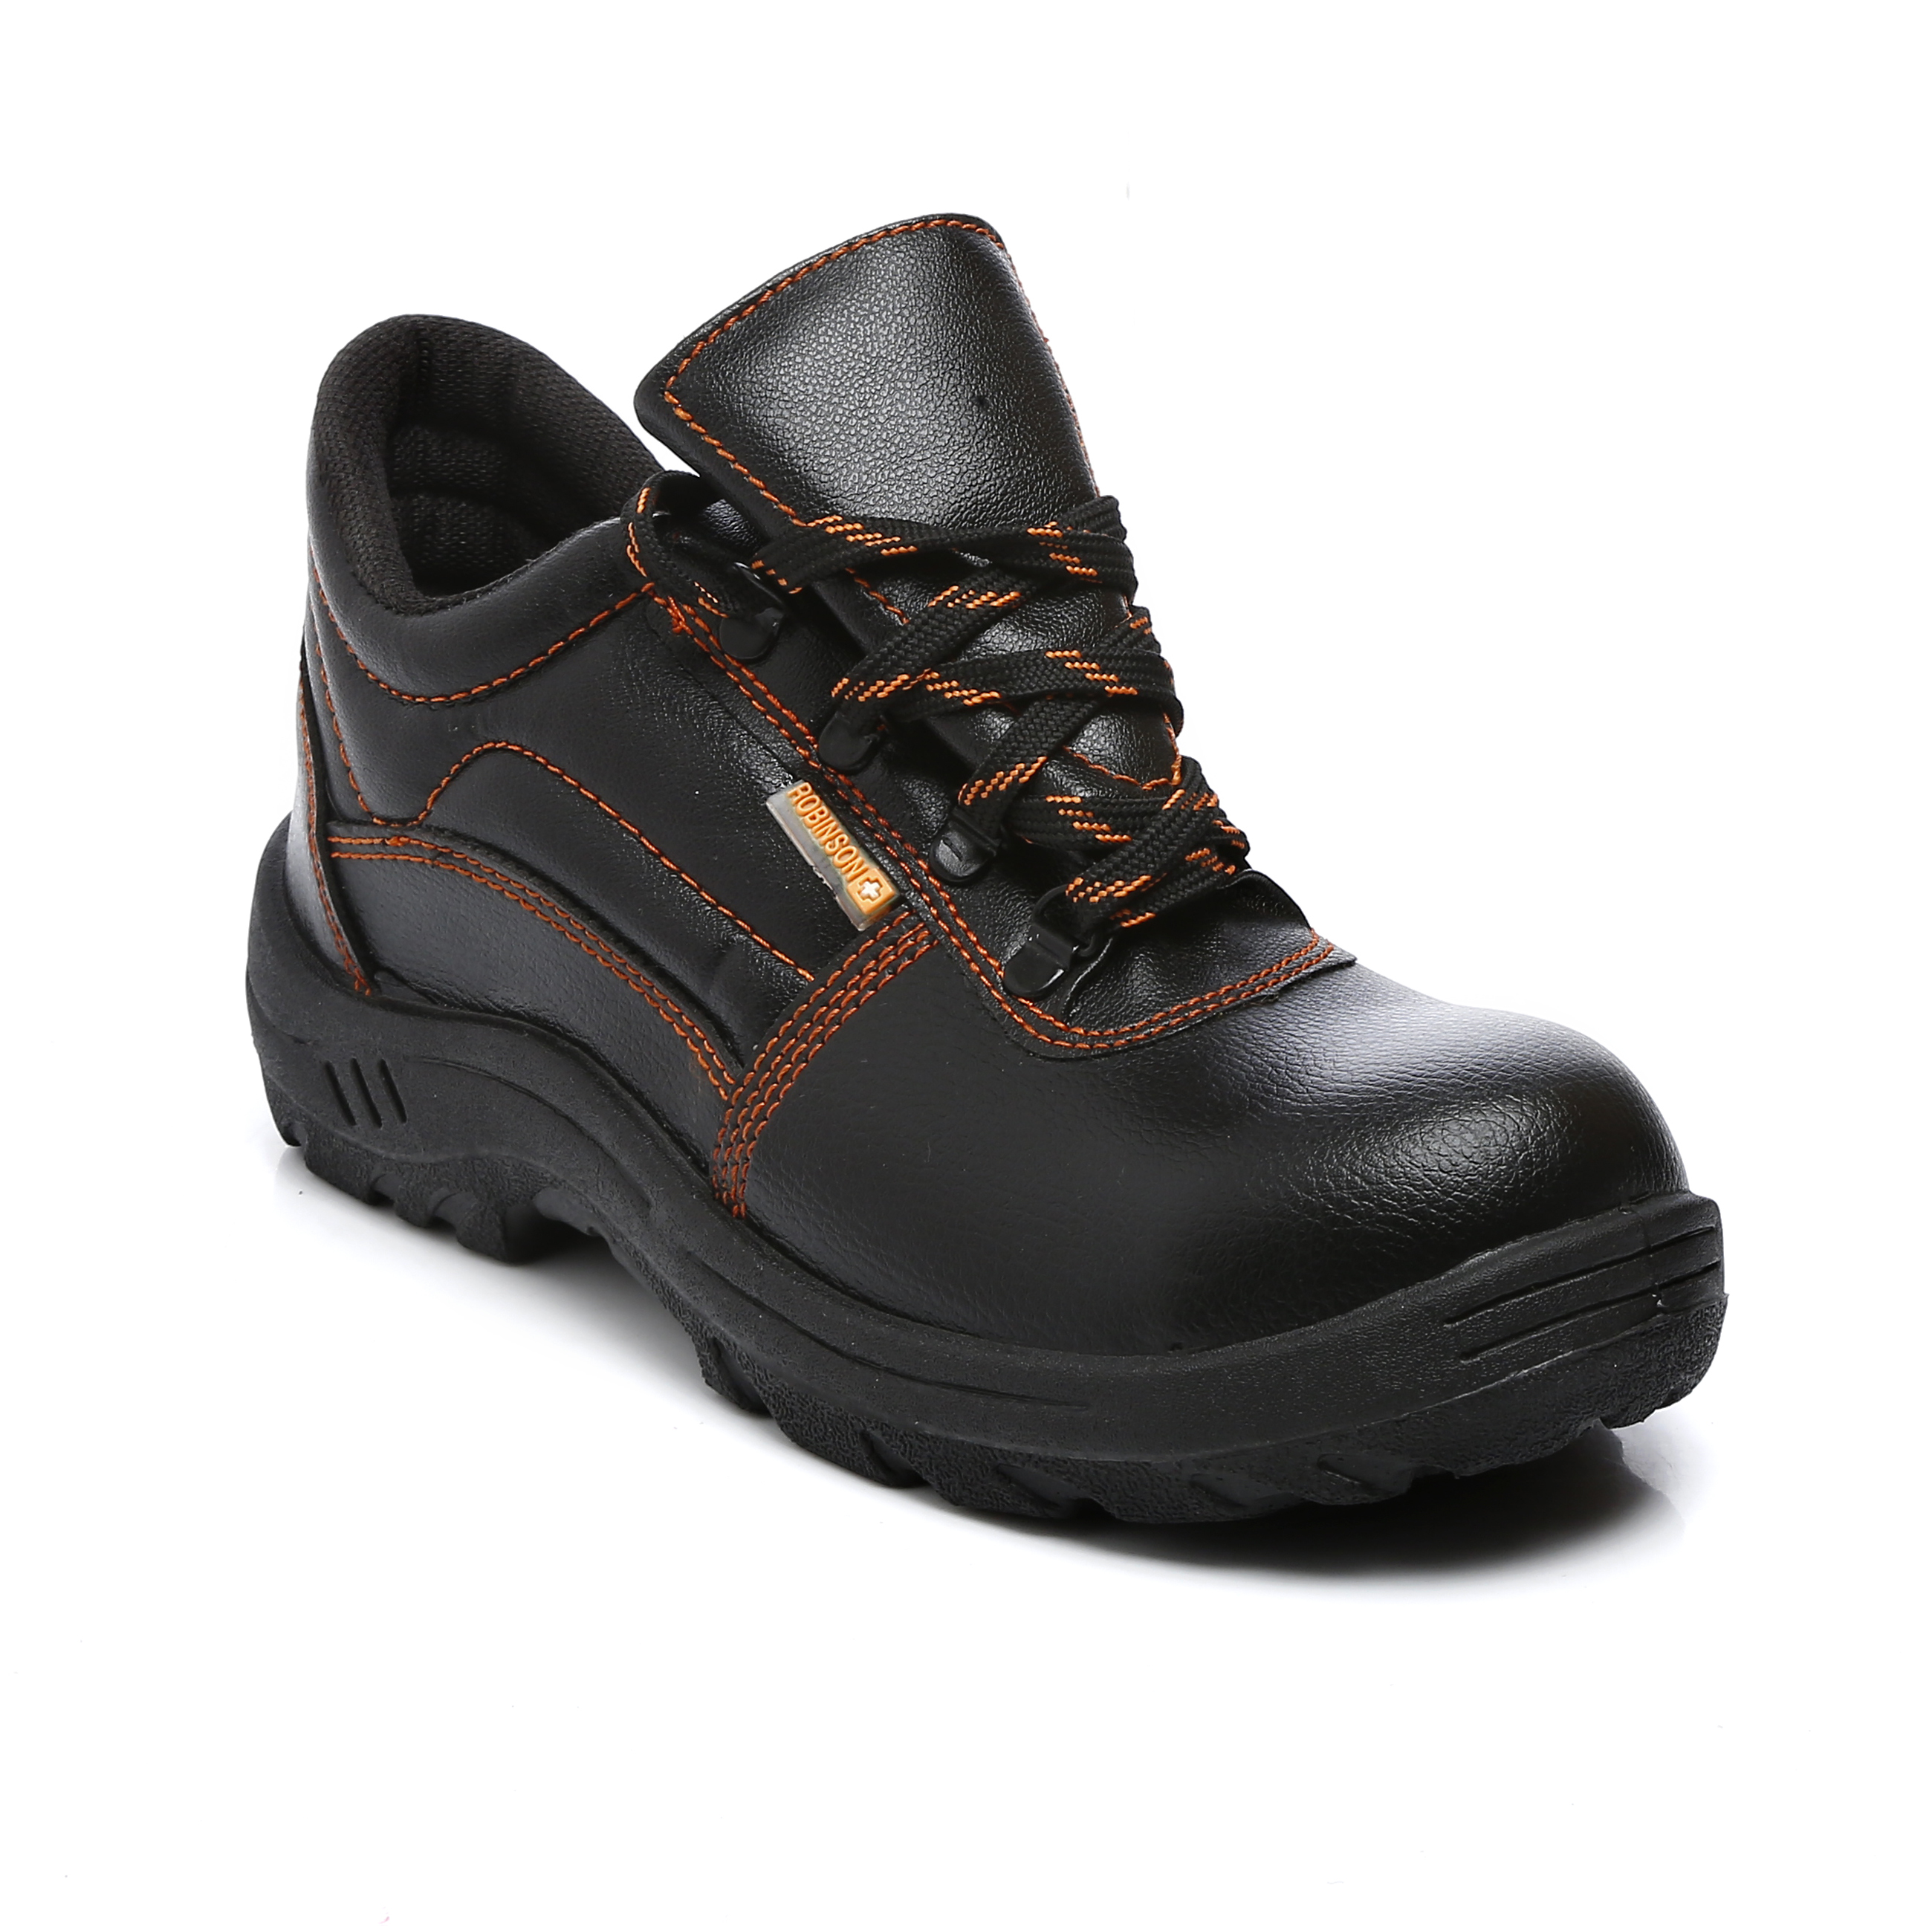 Safety Toes Shoes